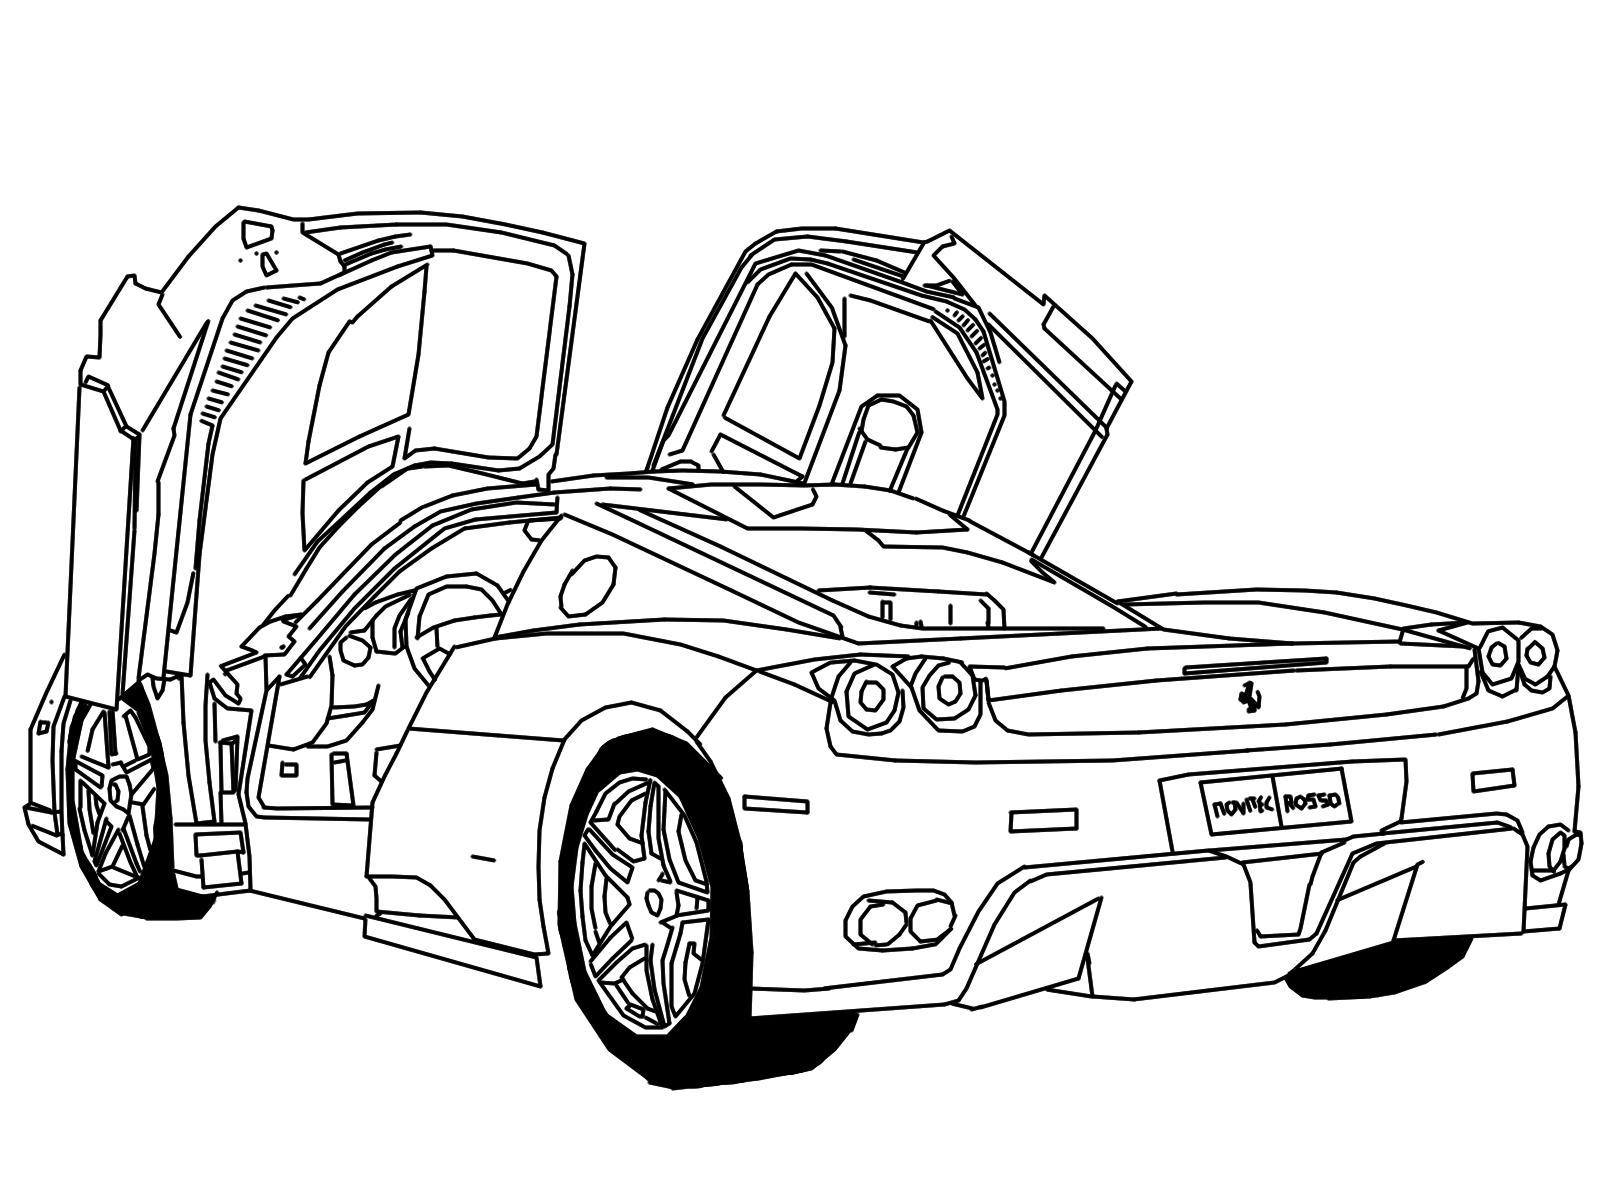 1600x1200 Pin By Girl Gamer On Draw! Vehicles Vehicle